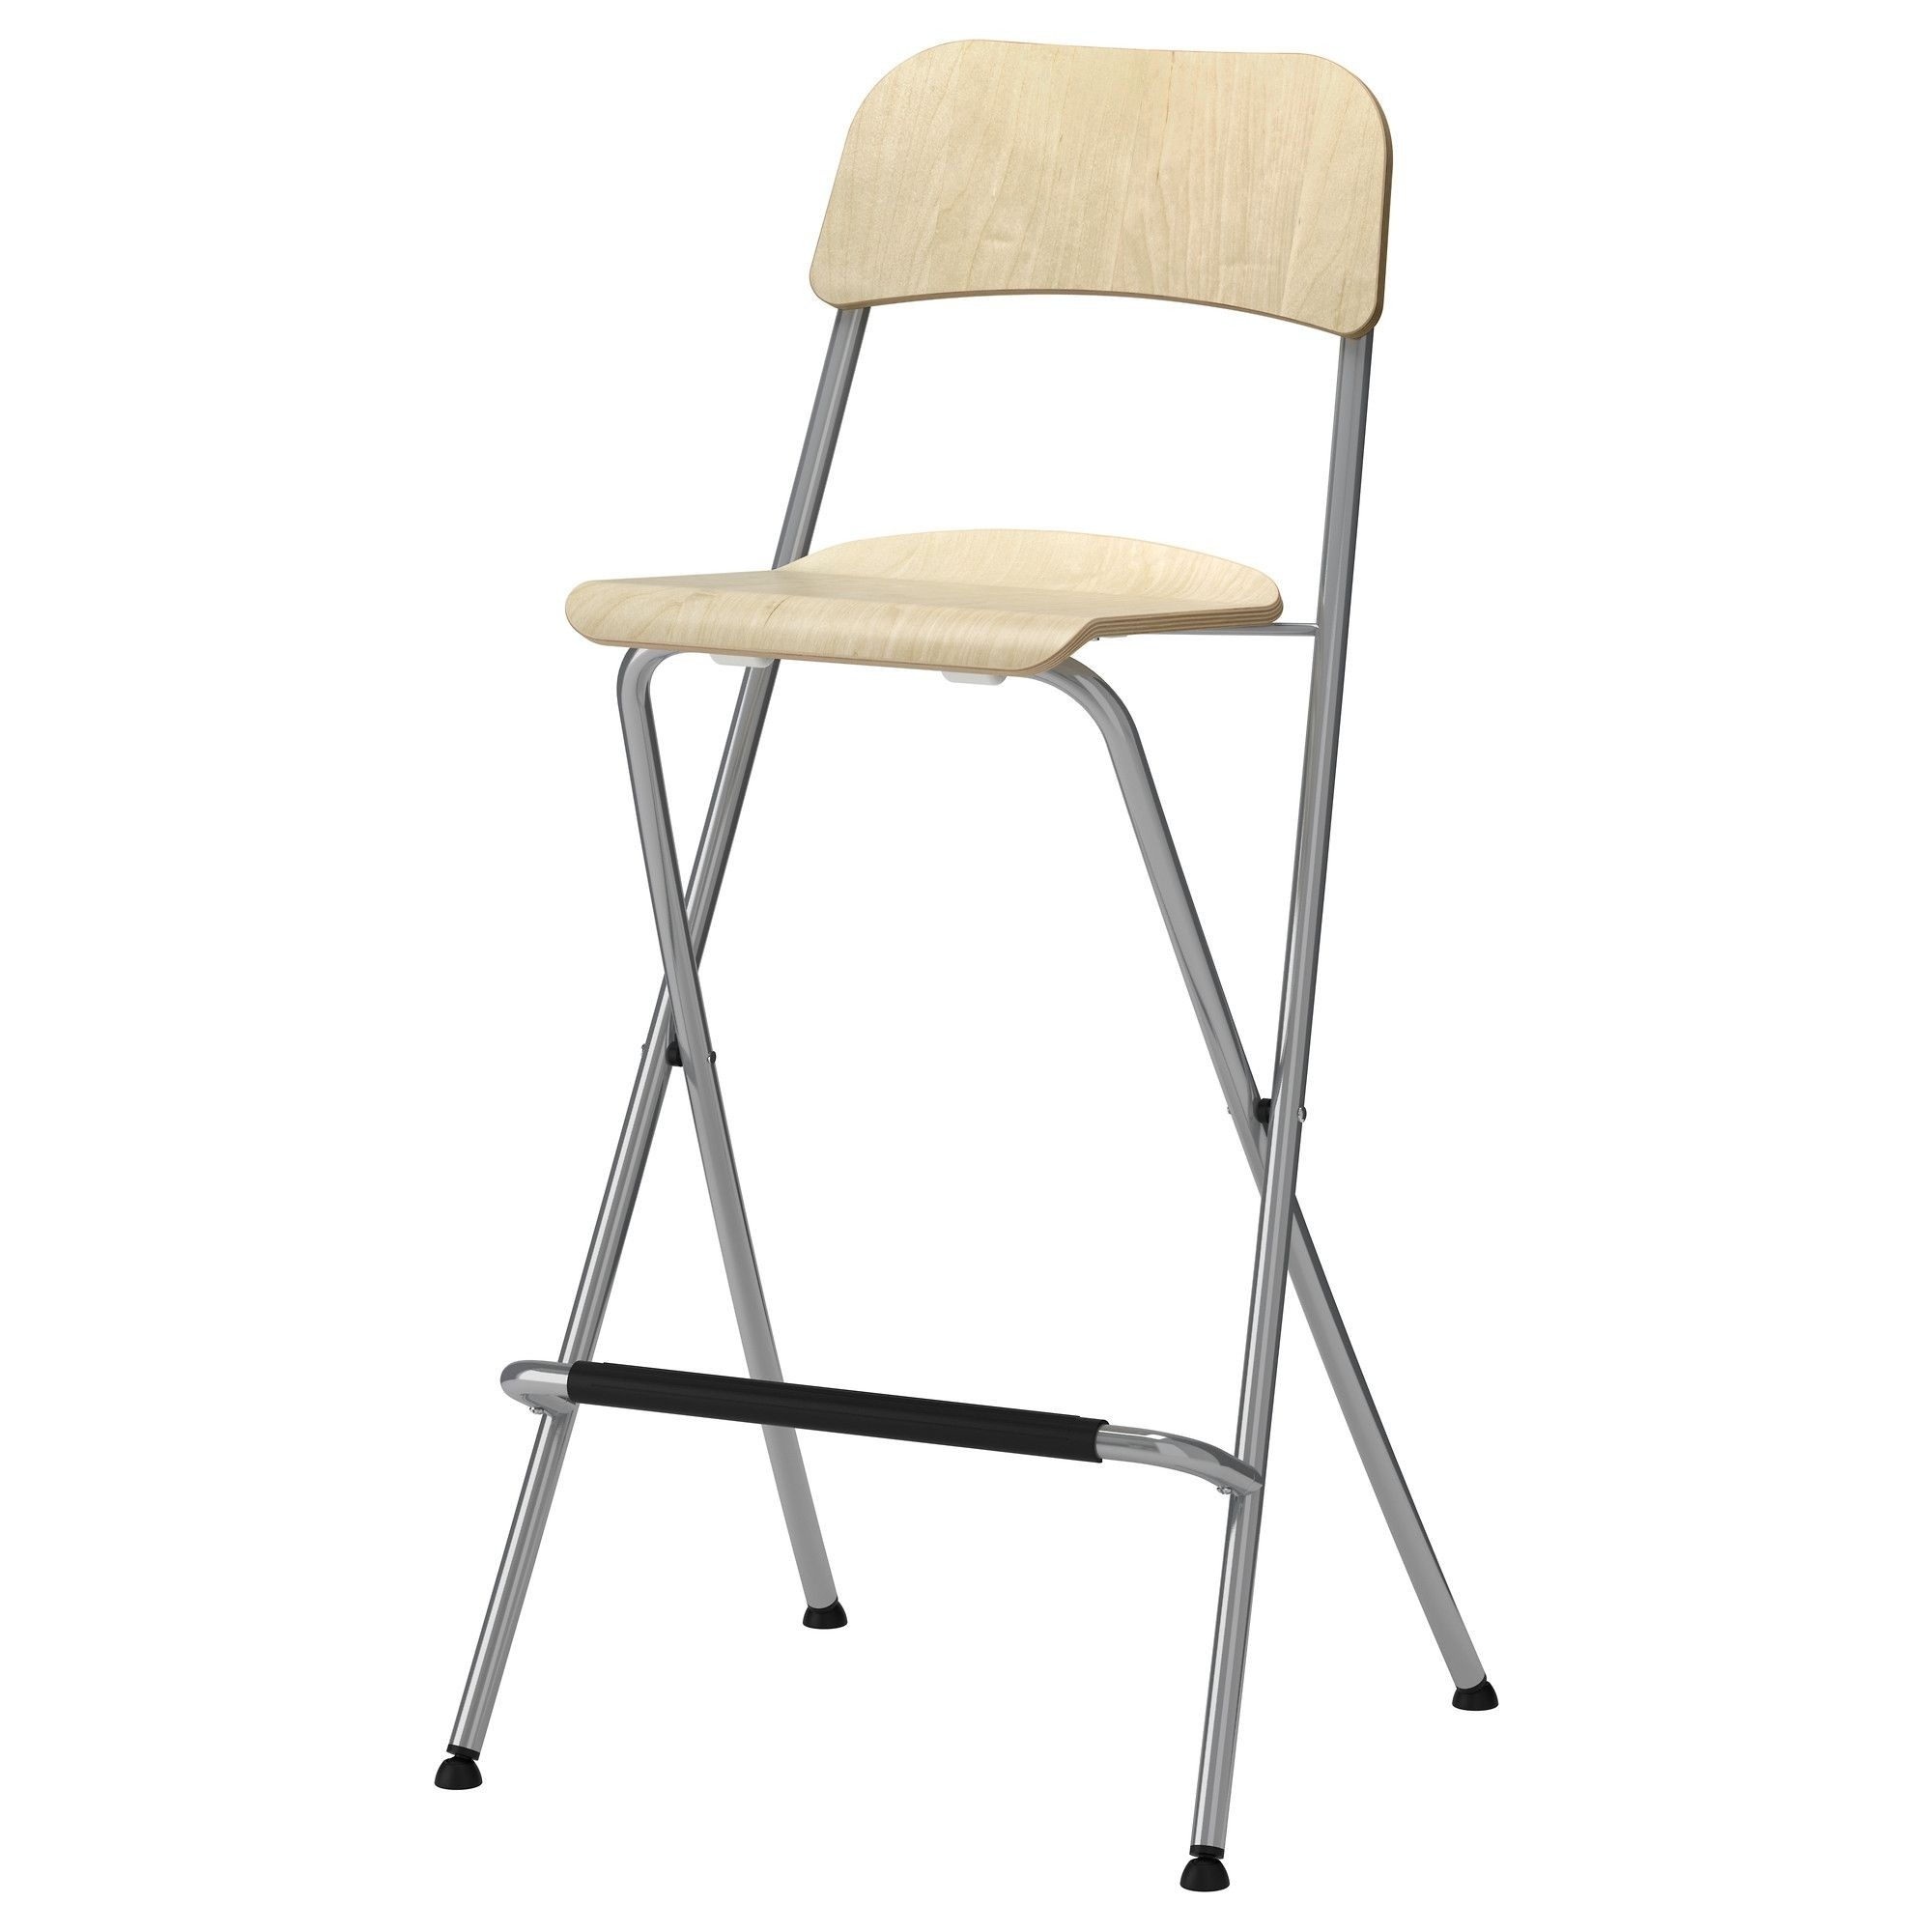 folding bar stool chairs comfortable chair for pc gaming stools ideas on foter foldable 2